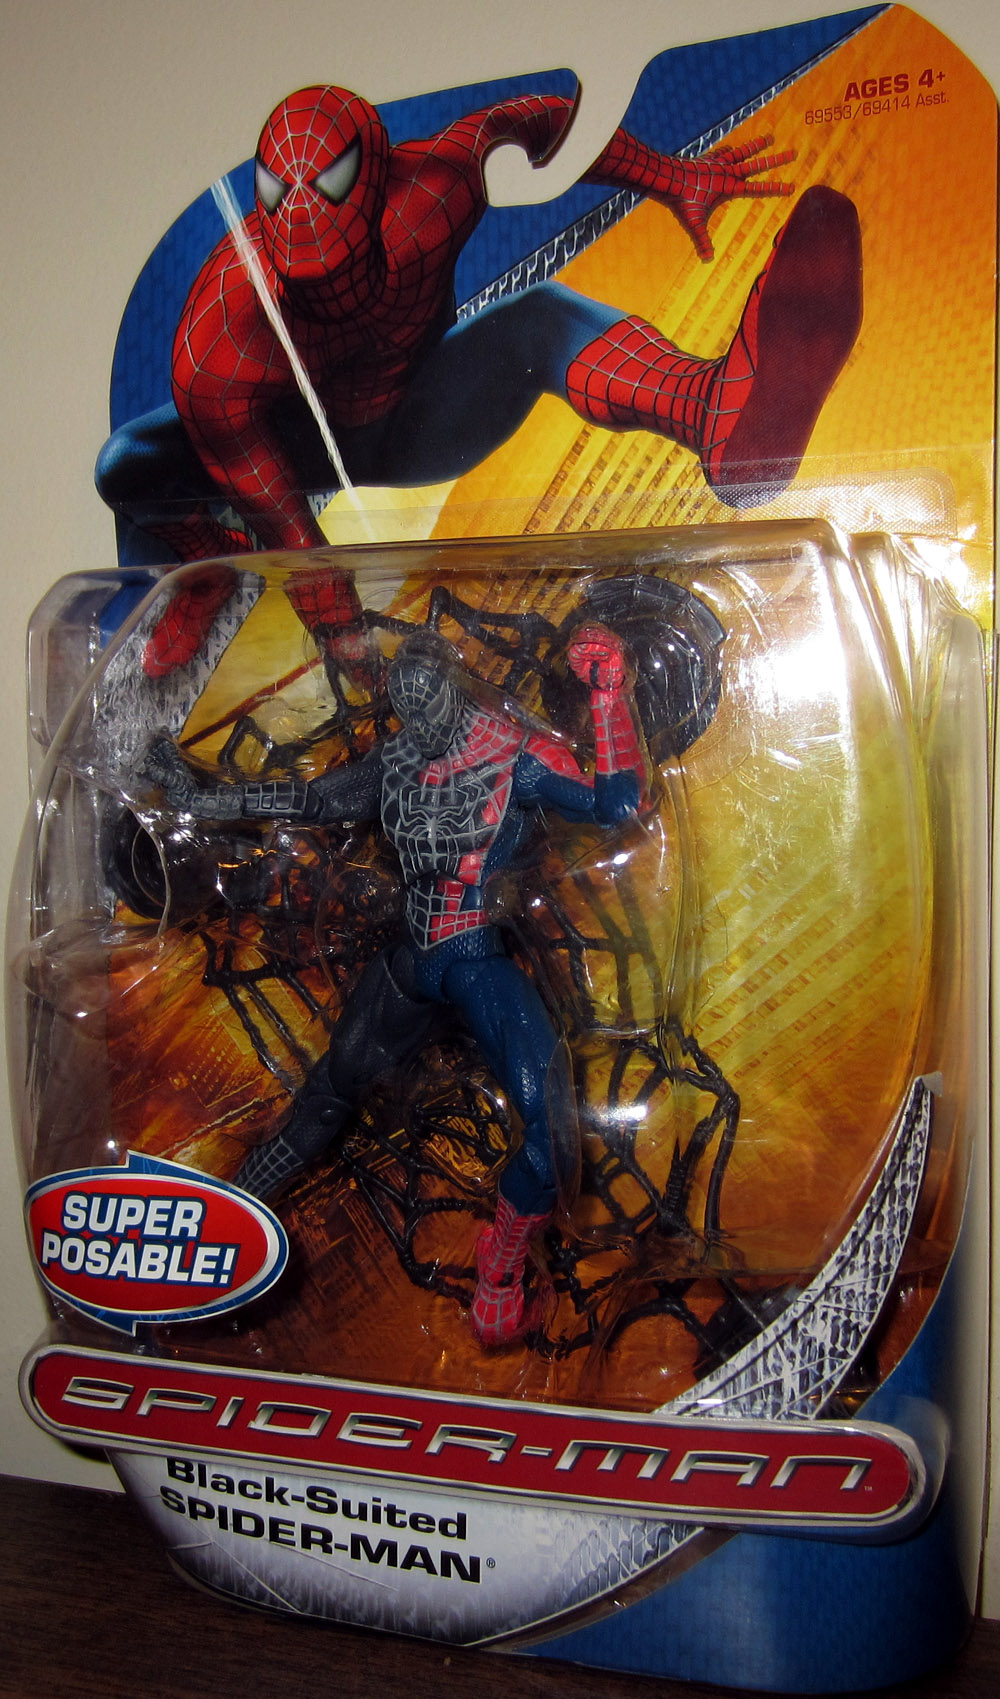 blacksuitedspiderman-superposeable-trilogy.jpg